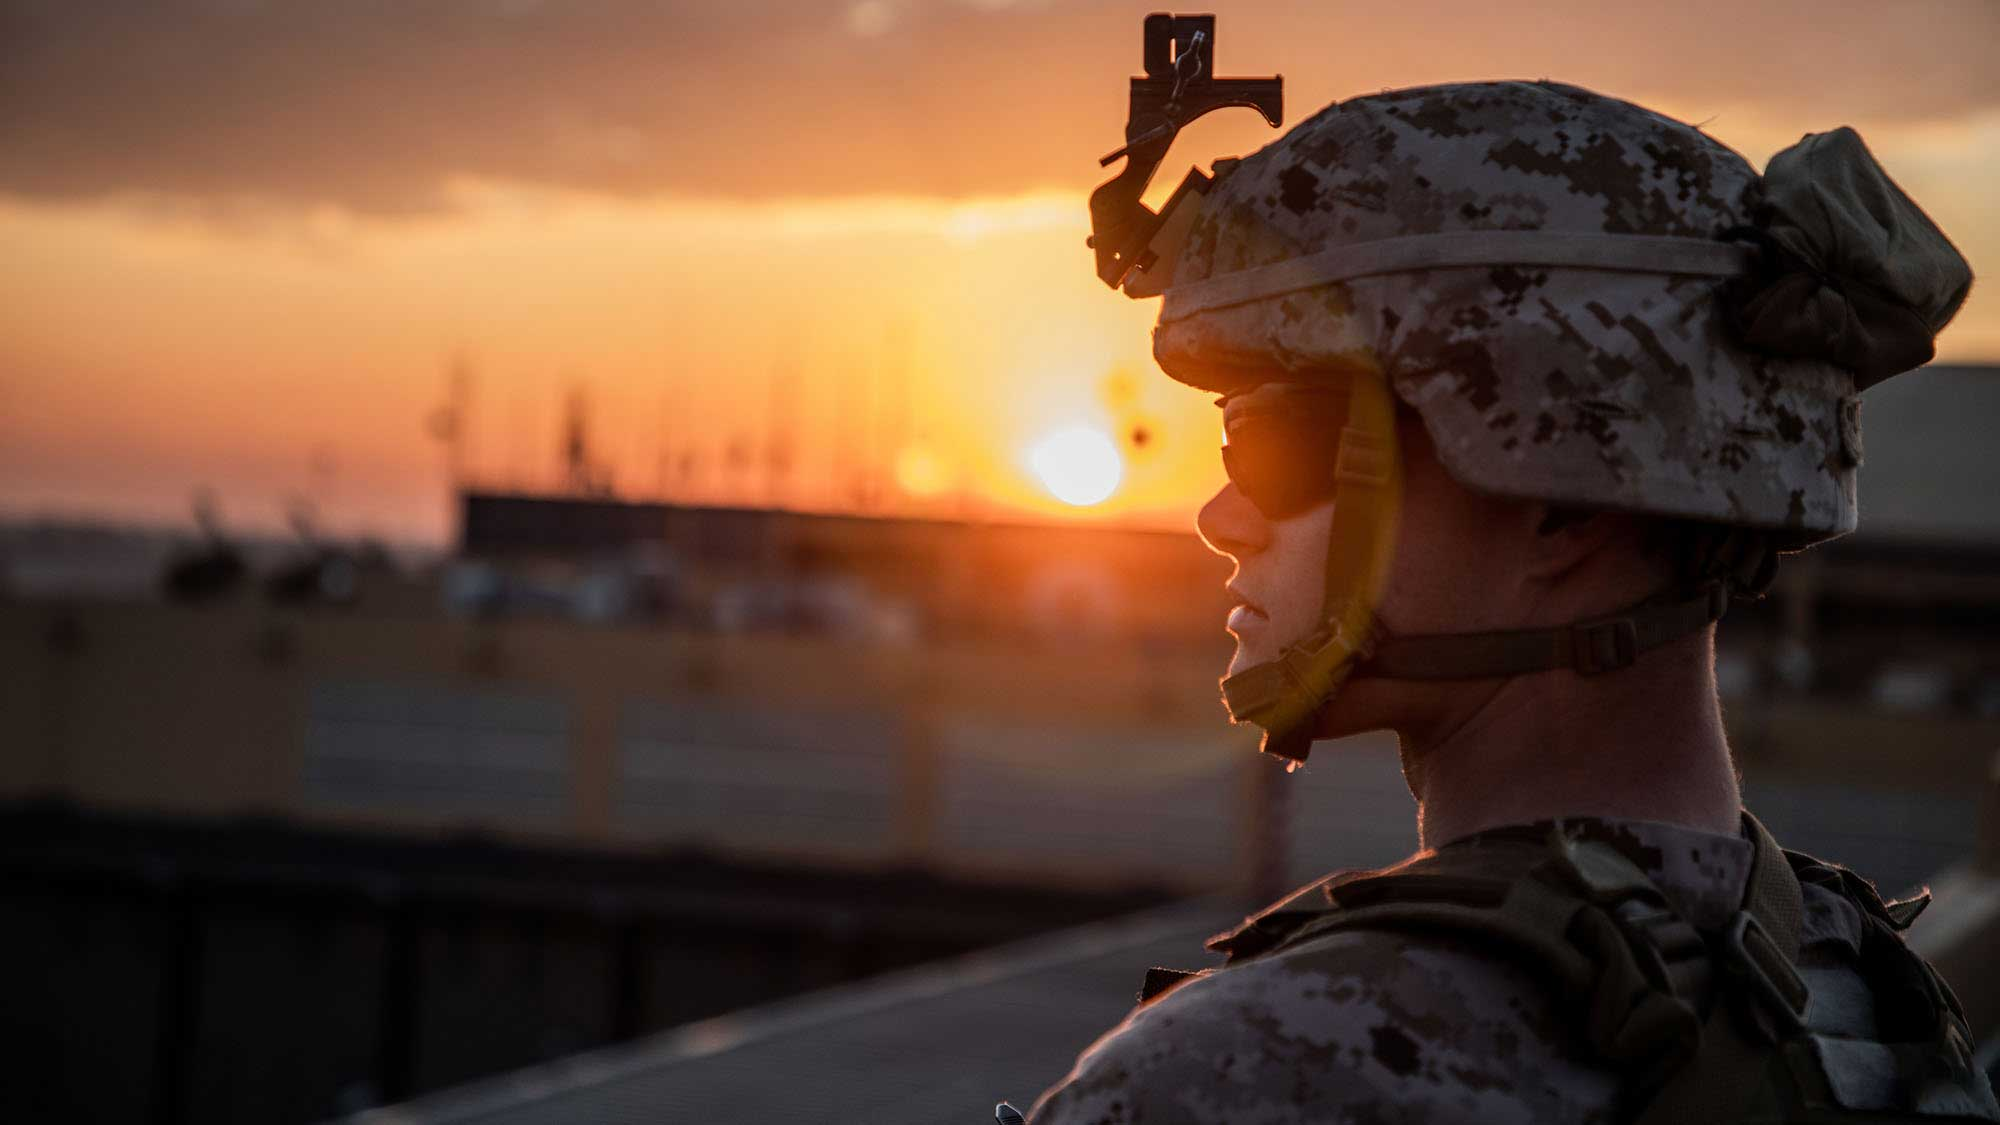 A Marine with the Special Purpose Marine Air-Ground Task Force-Crisis Response-Central Command stands post during the reinforcement of the Baghdad Embassy Compound in Iraq on Jan. 4. (Photo by Sgt. Kyle C. Talbot/U.S. Marine Corps)